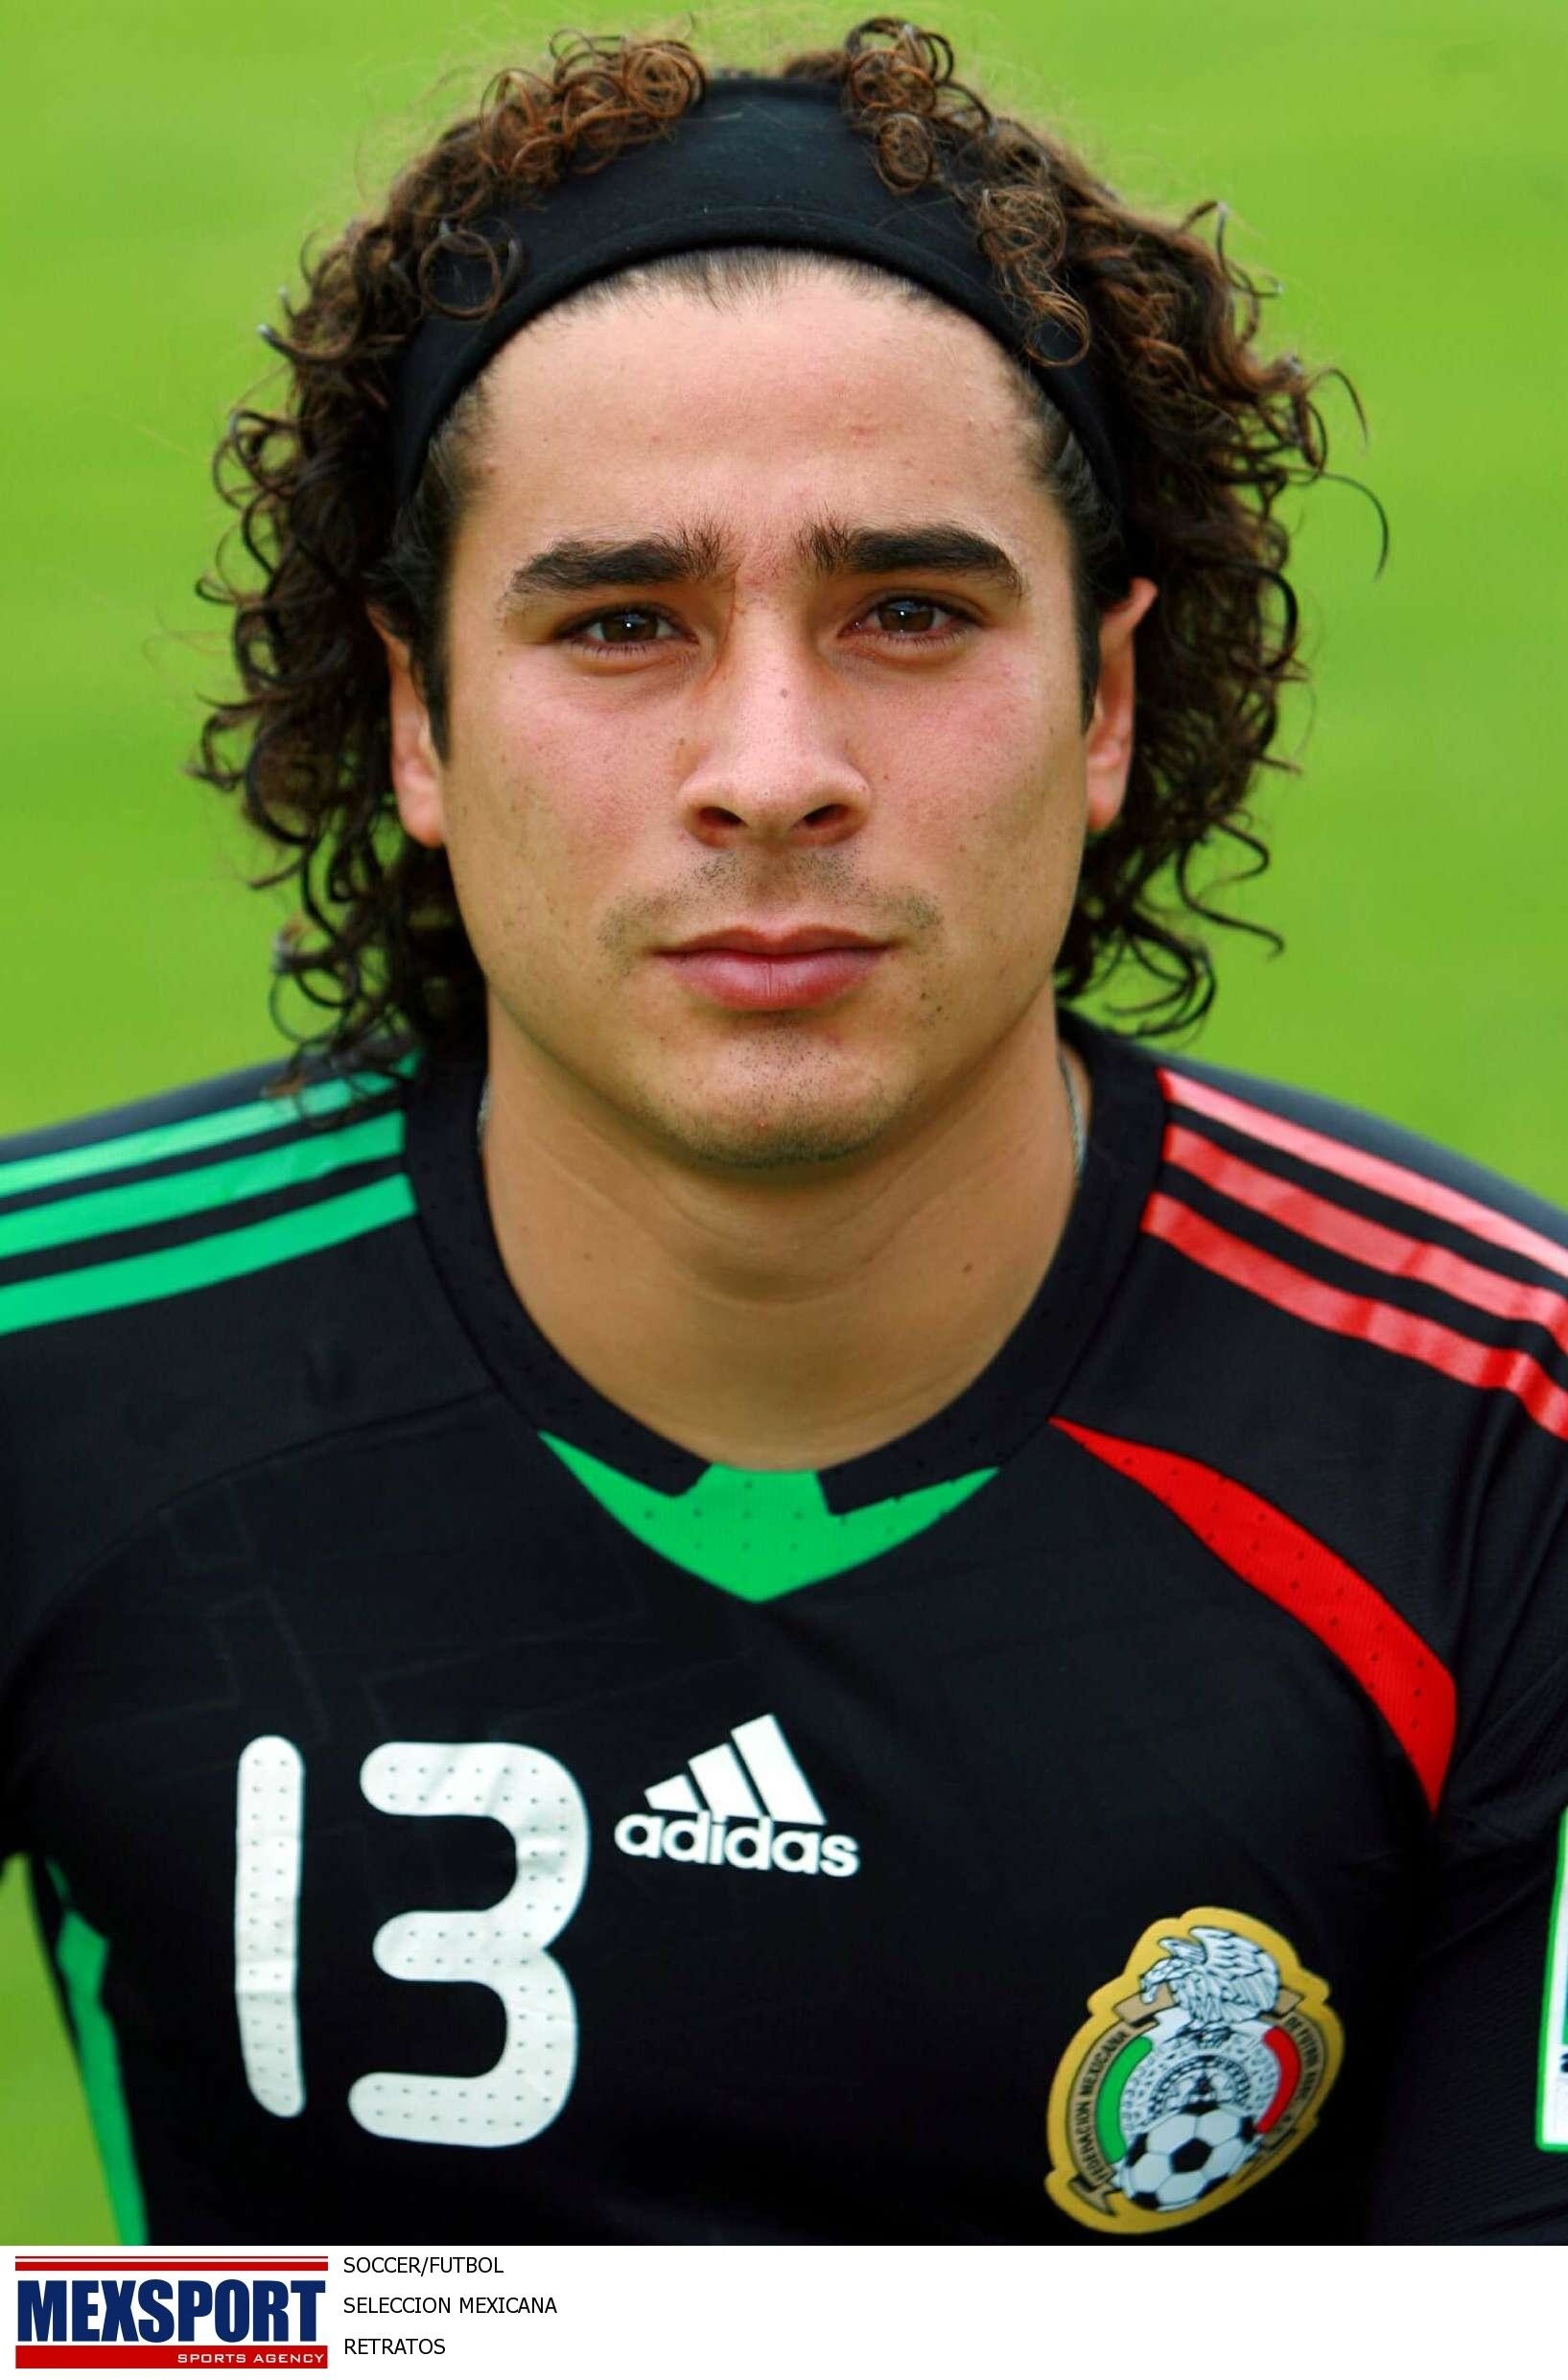 Mexico soccer team wallpaper 2018 65 images - Guillermo ochoa wallpaper ...